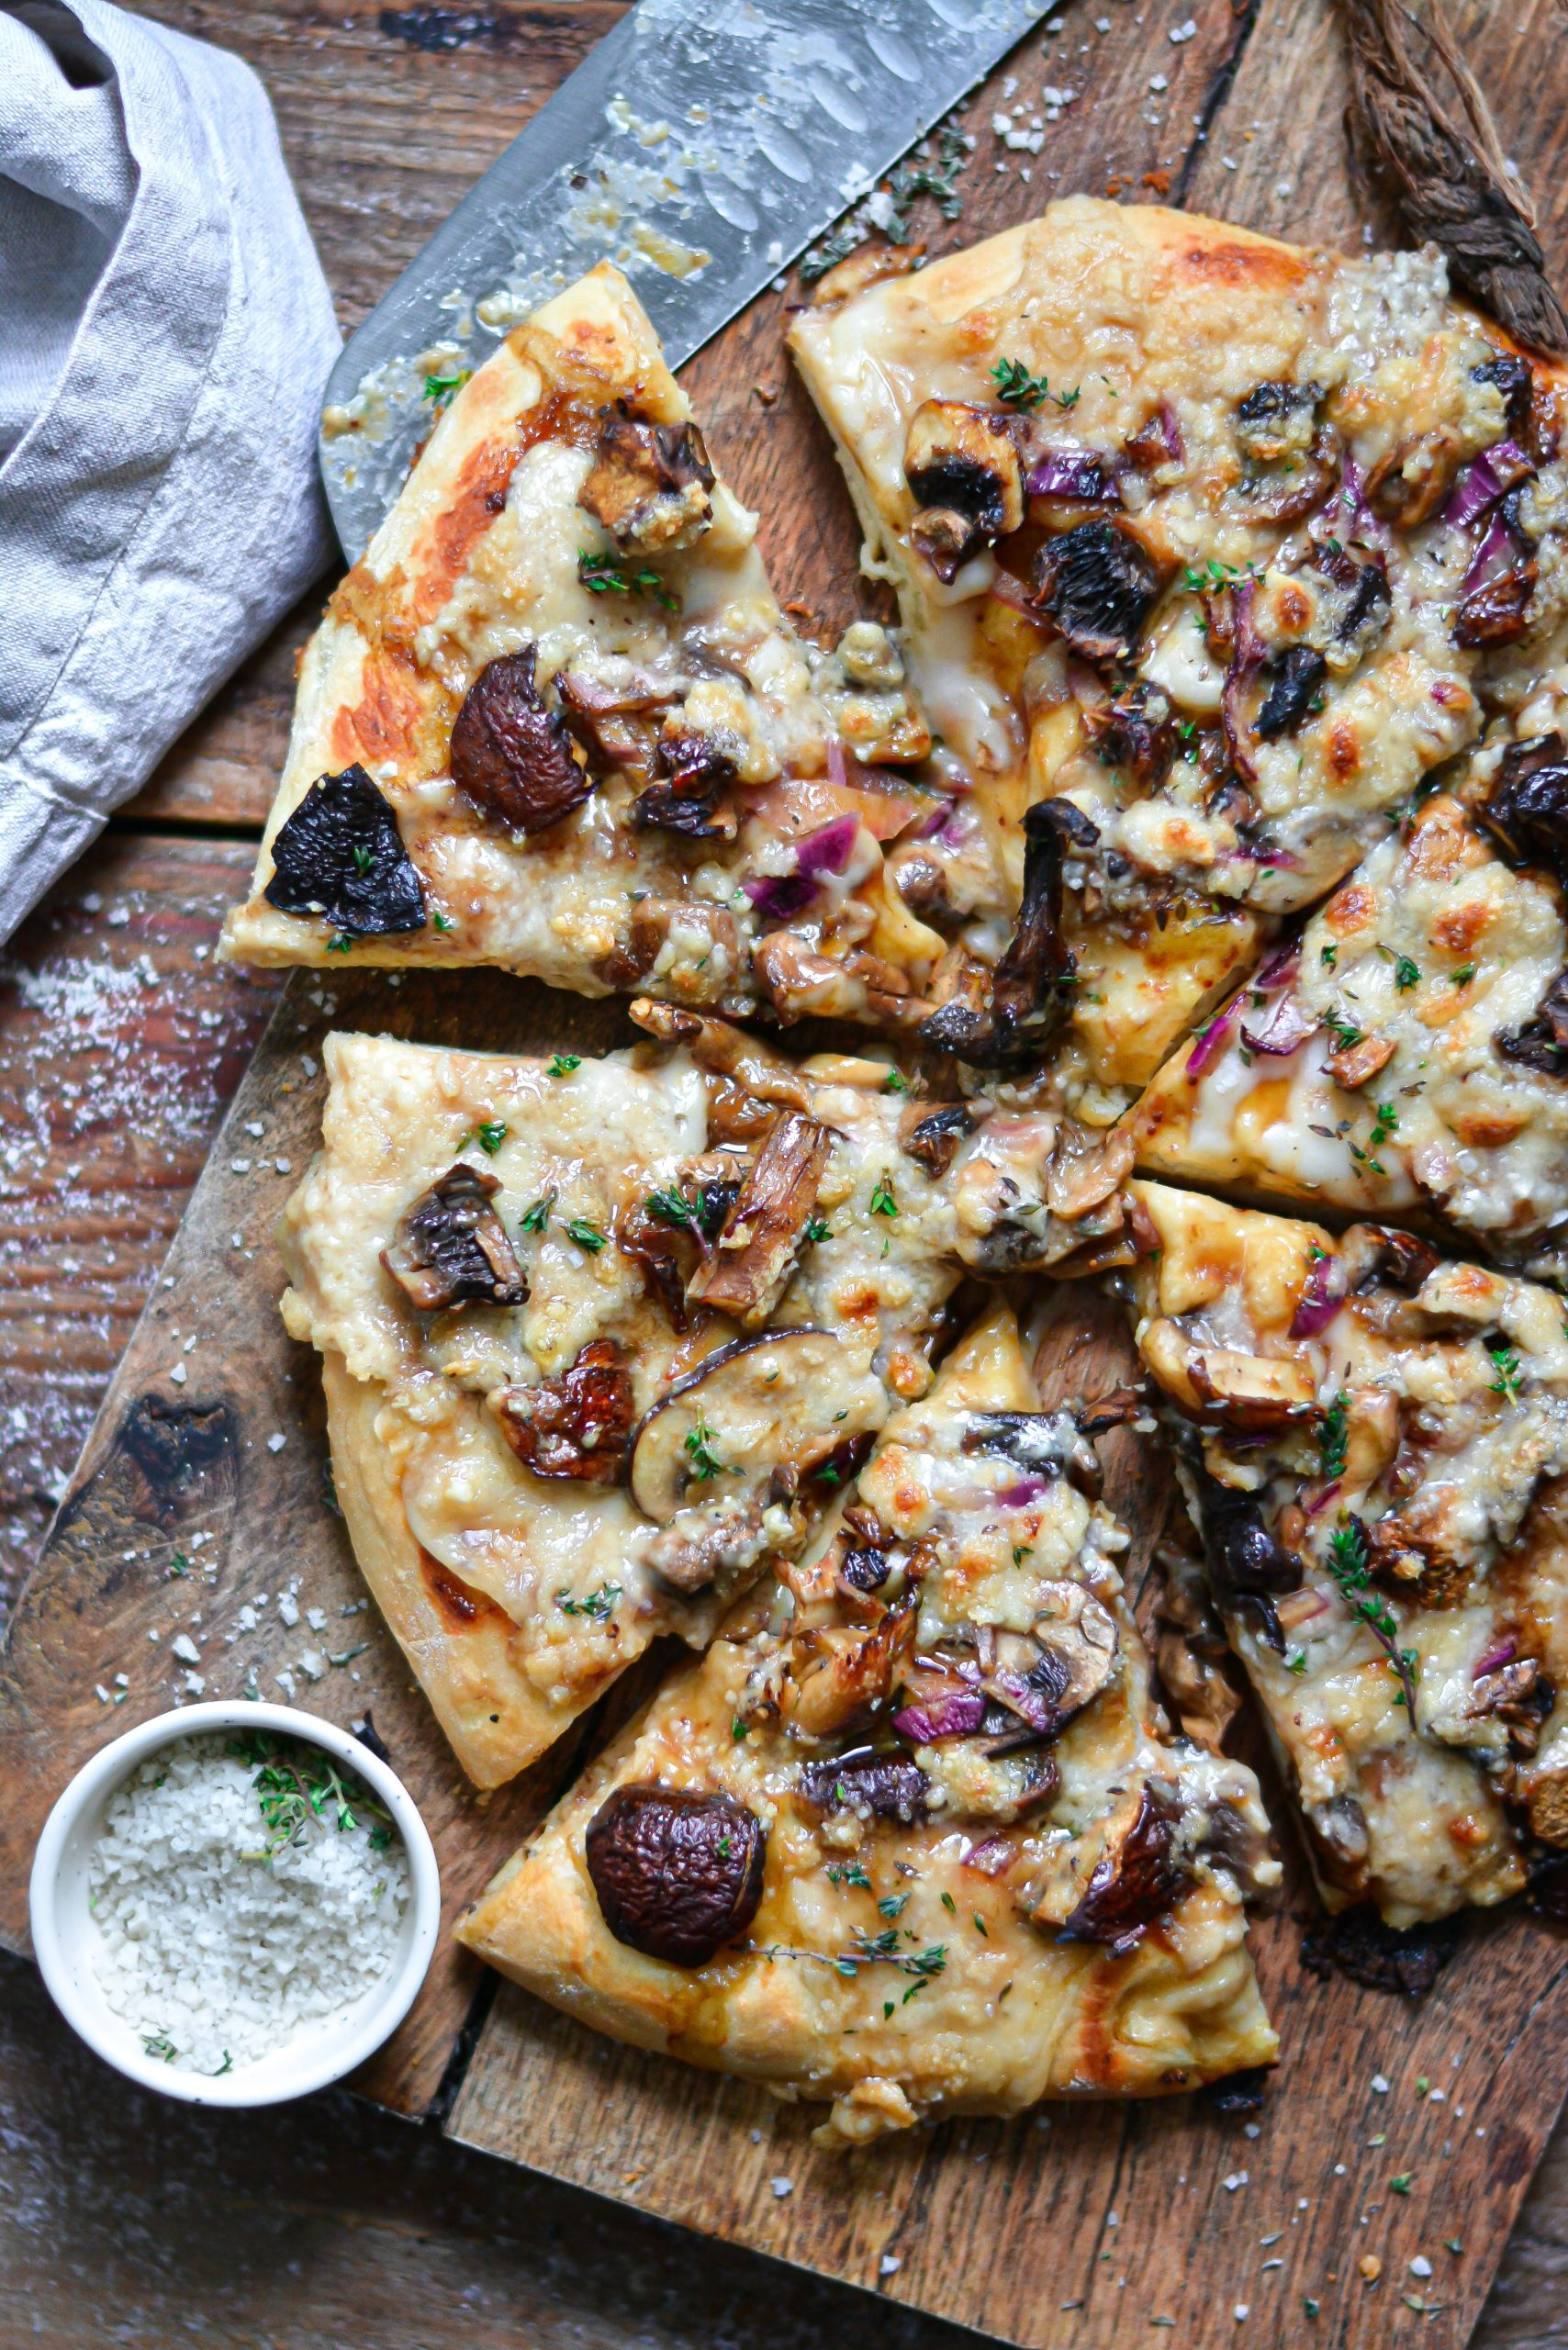 Pizza Vegan aux Champignons Balsamique / Vegan Cheesy and Balsamic Mushrooms Pizza